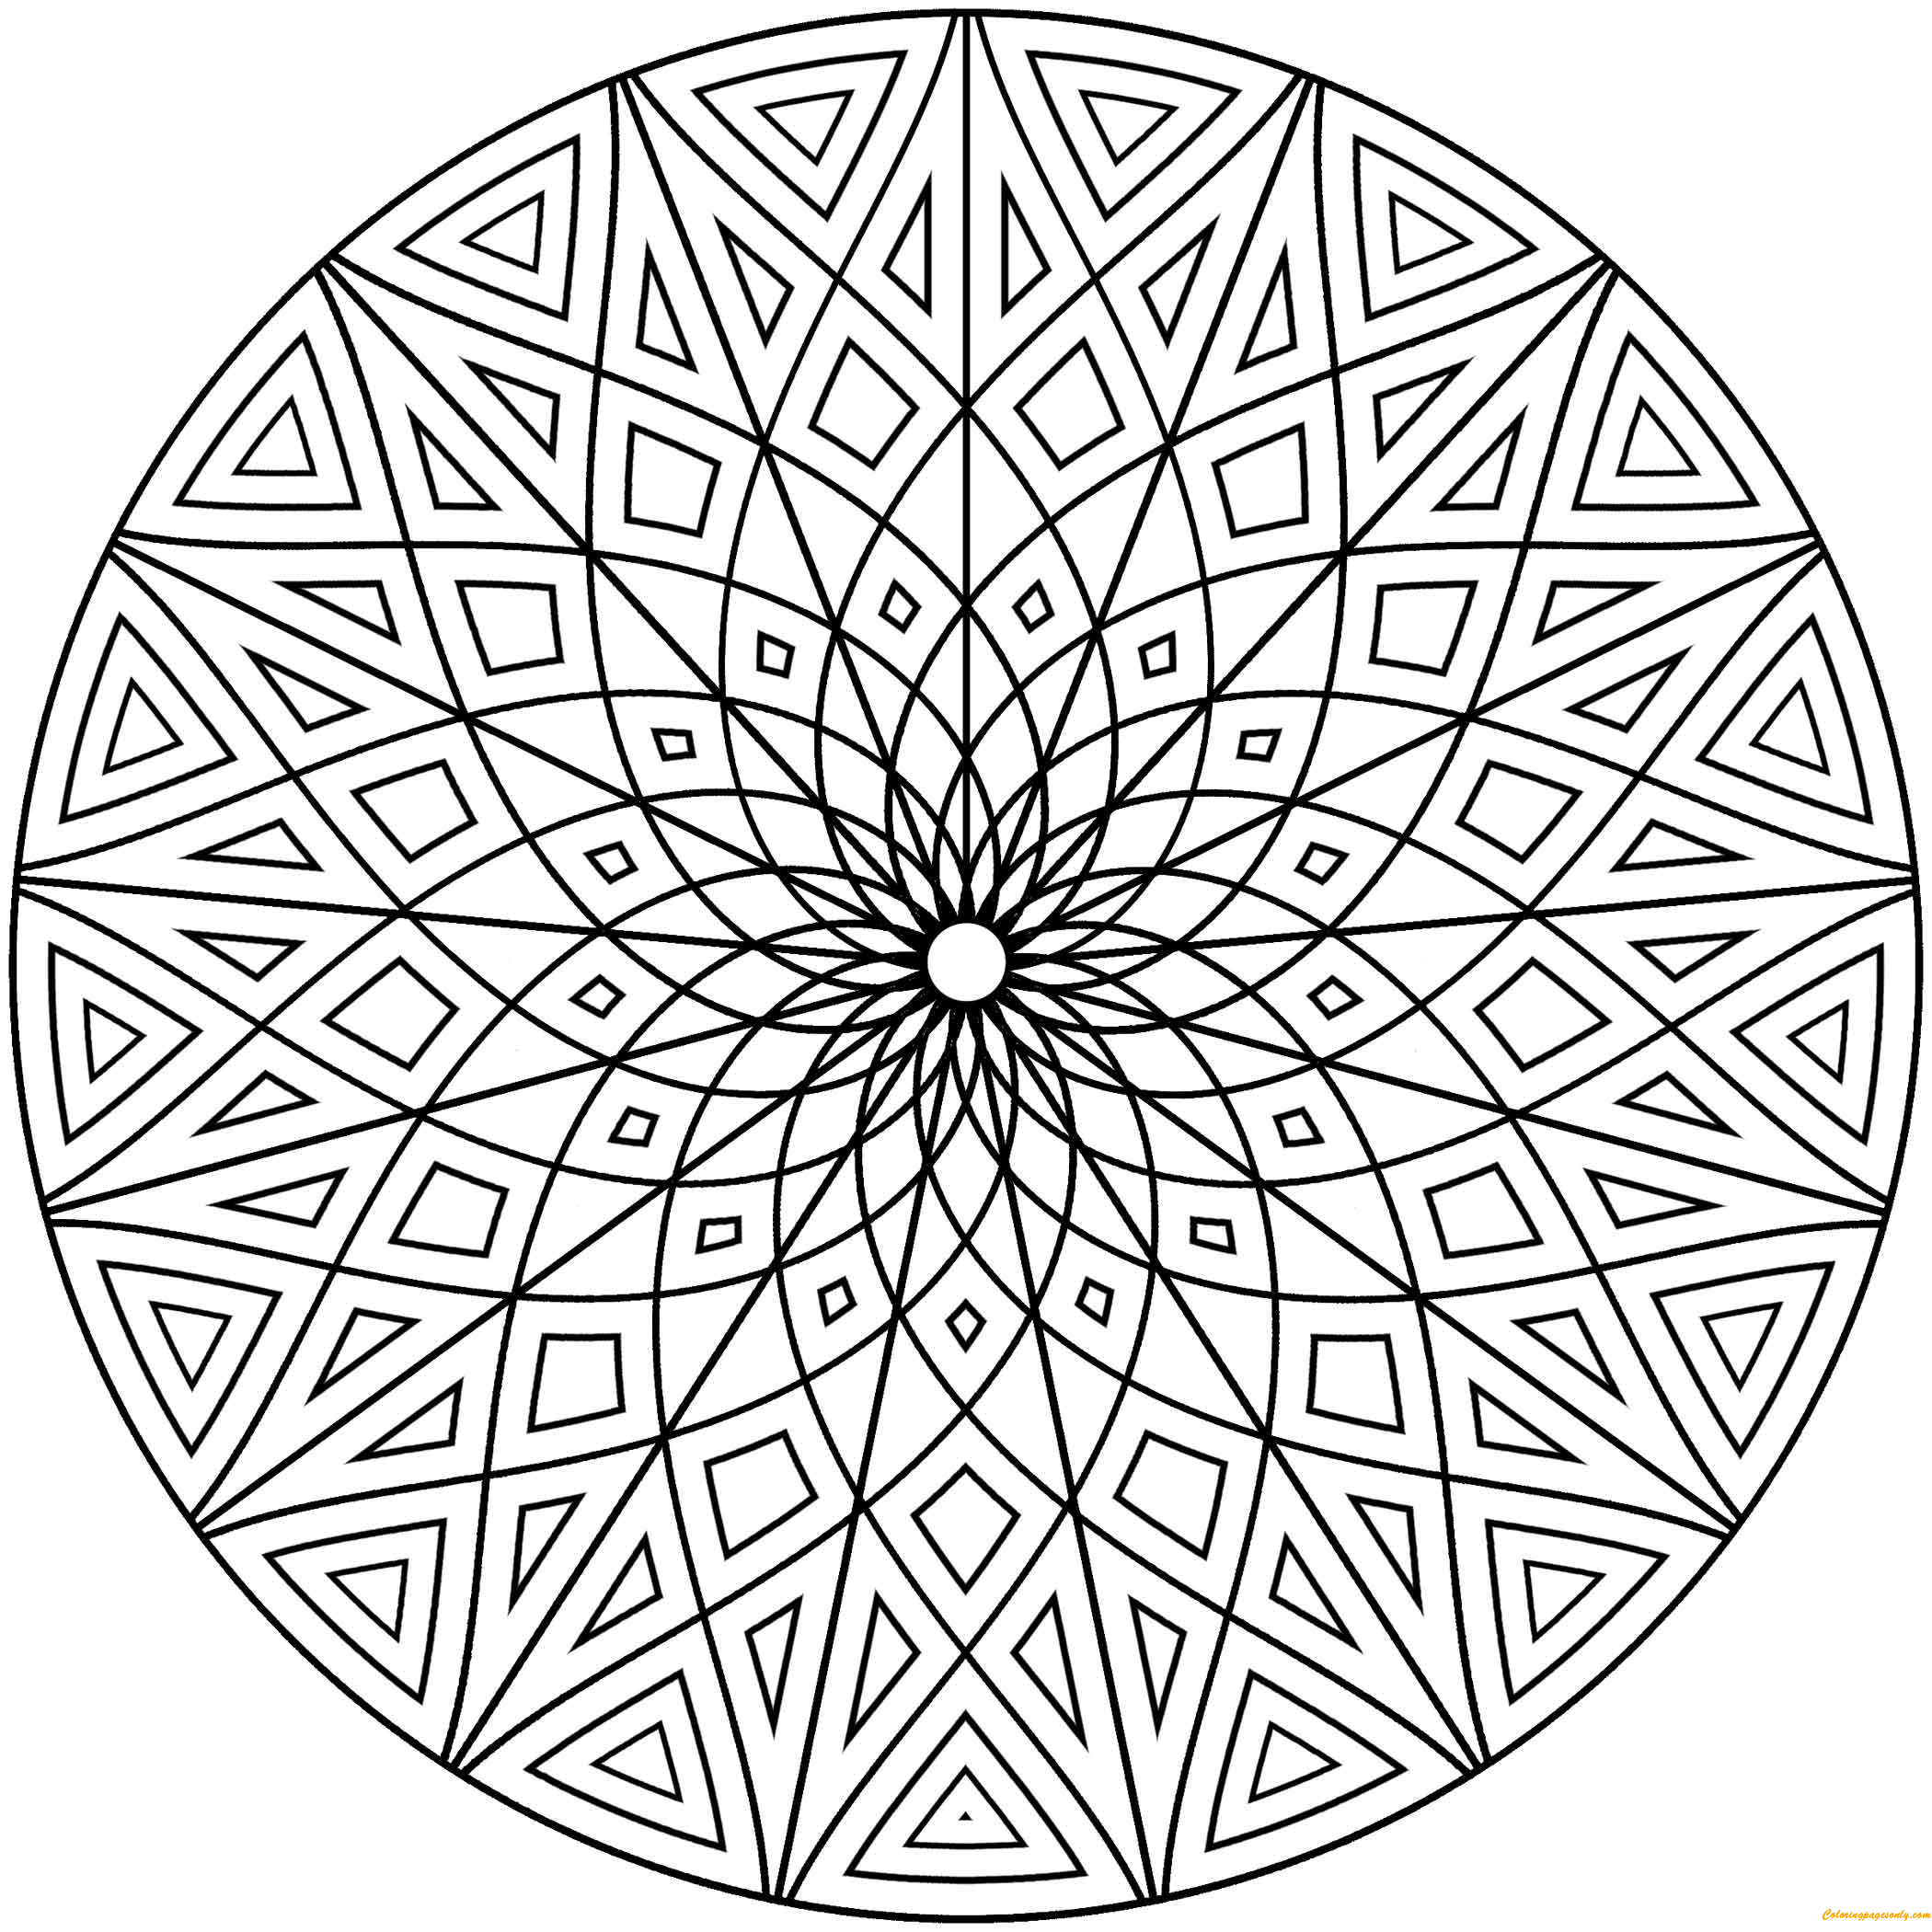 Hard Geometric Designs Coloring Page - Free Coloring Pages ...